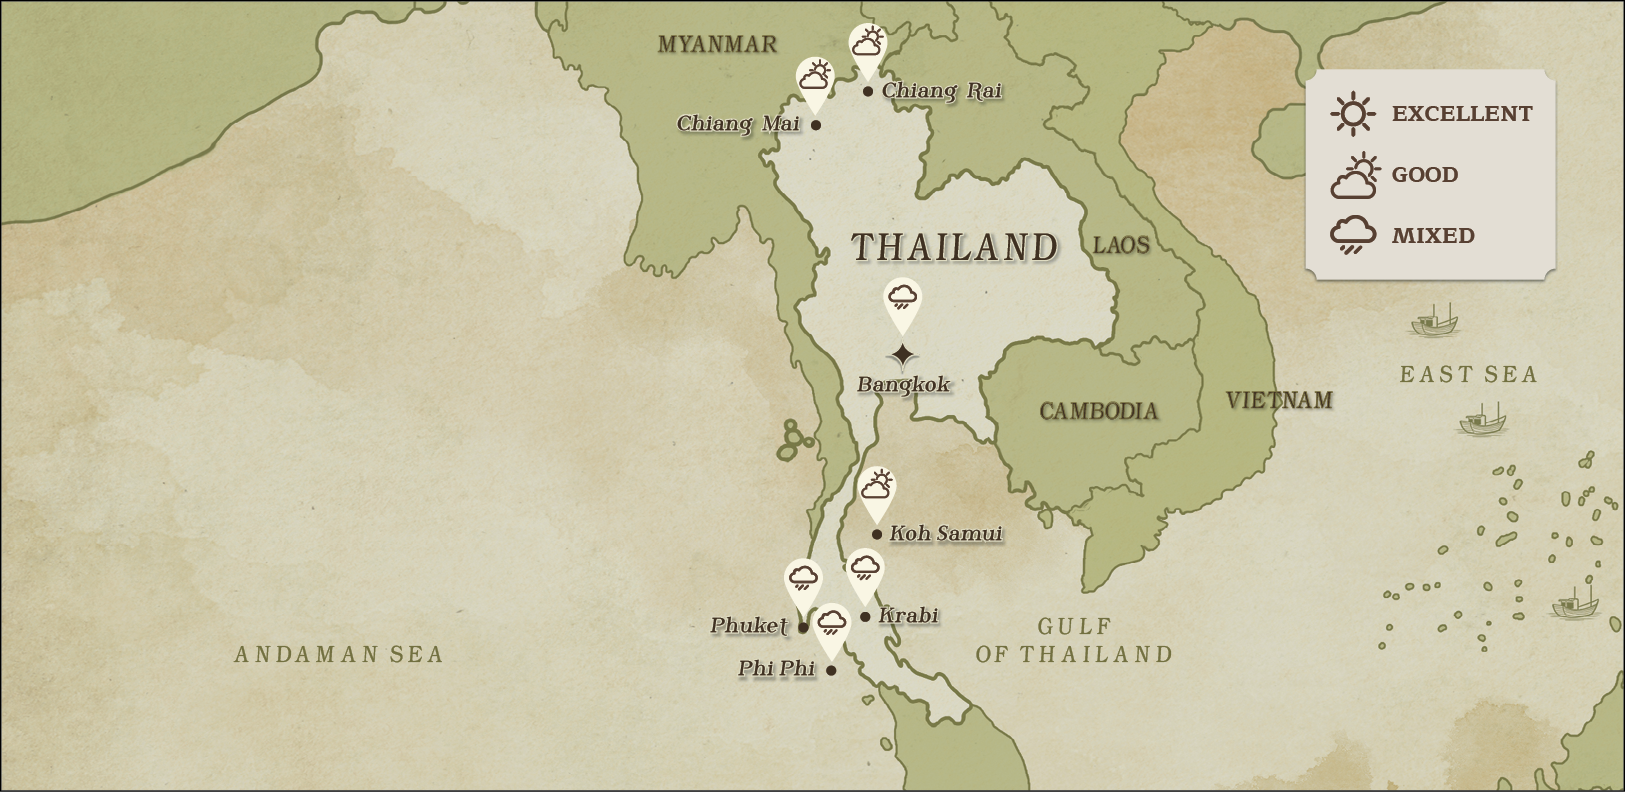 THAILAND WEATHER MAP August